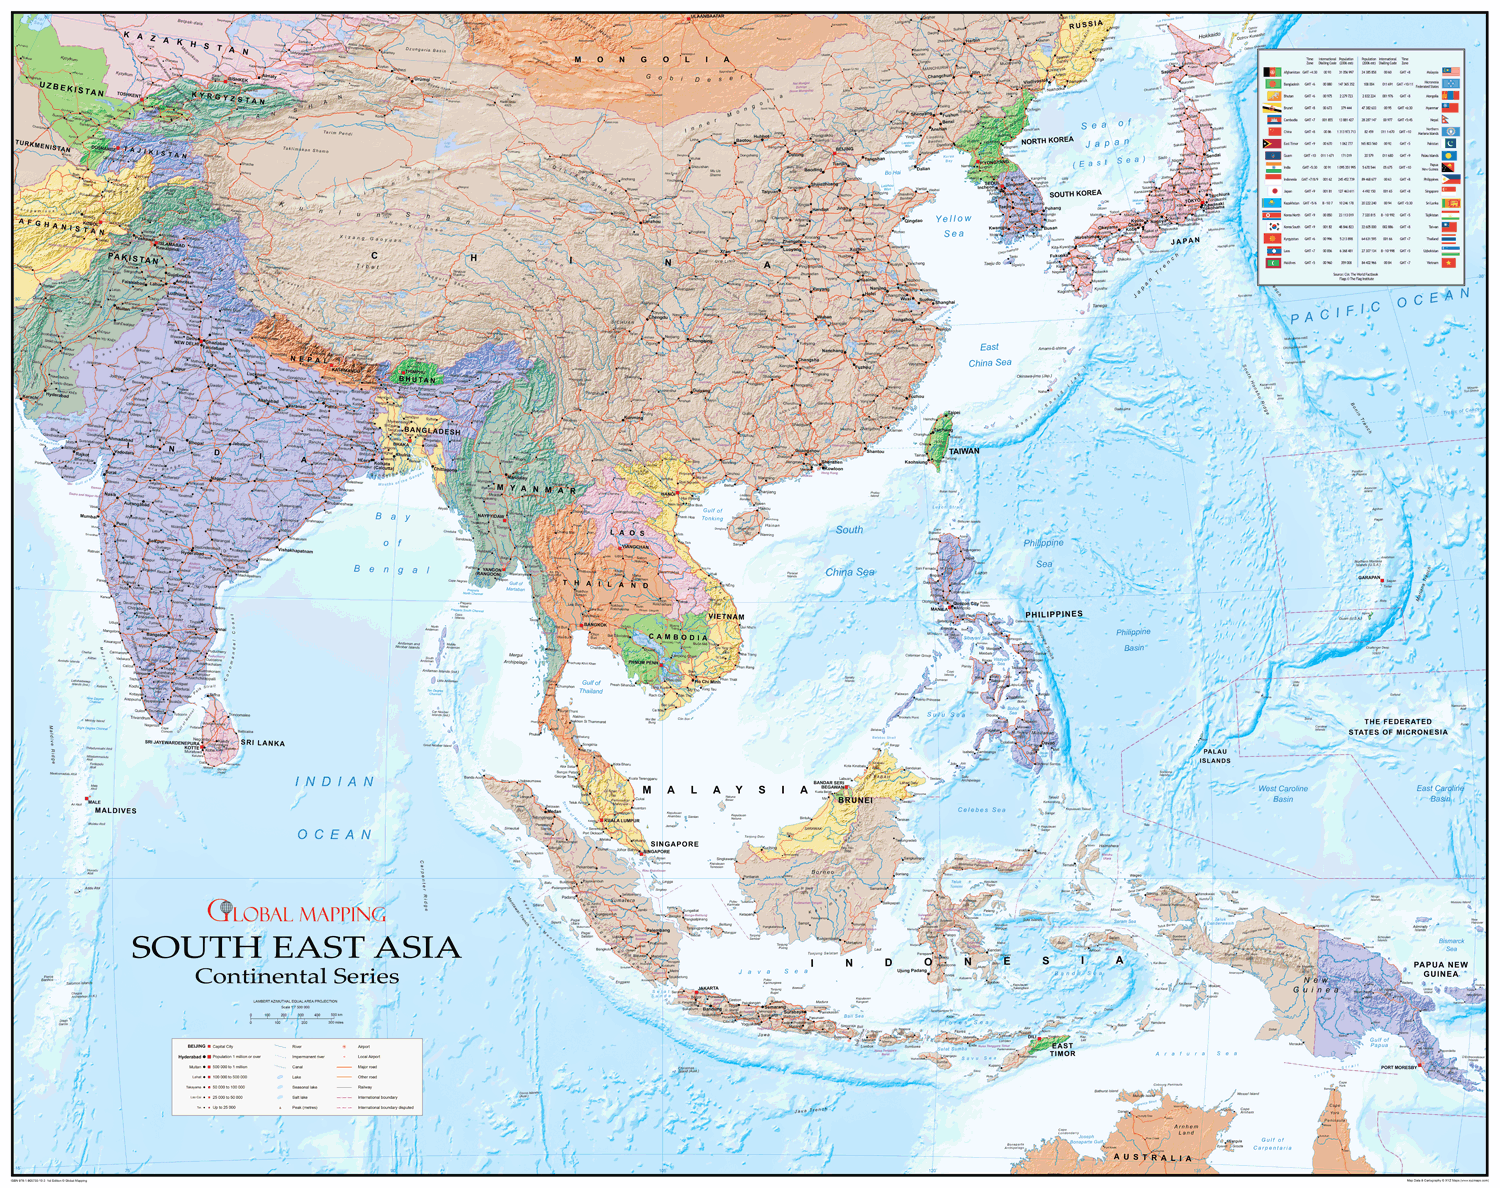 how the domino theory was the proper course of action for the us in south east asia Without the domino theory, vietnam would have been an unimportant (to the us) country far away from the us and unable to hurt the us thus, the domino theory was an extremely significant reason for the us to get involved in vietnam.